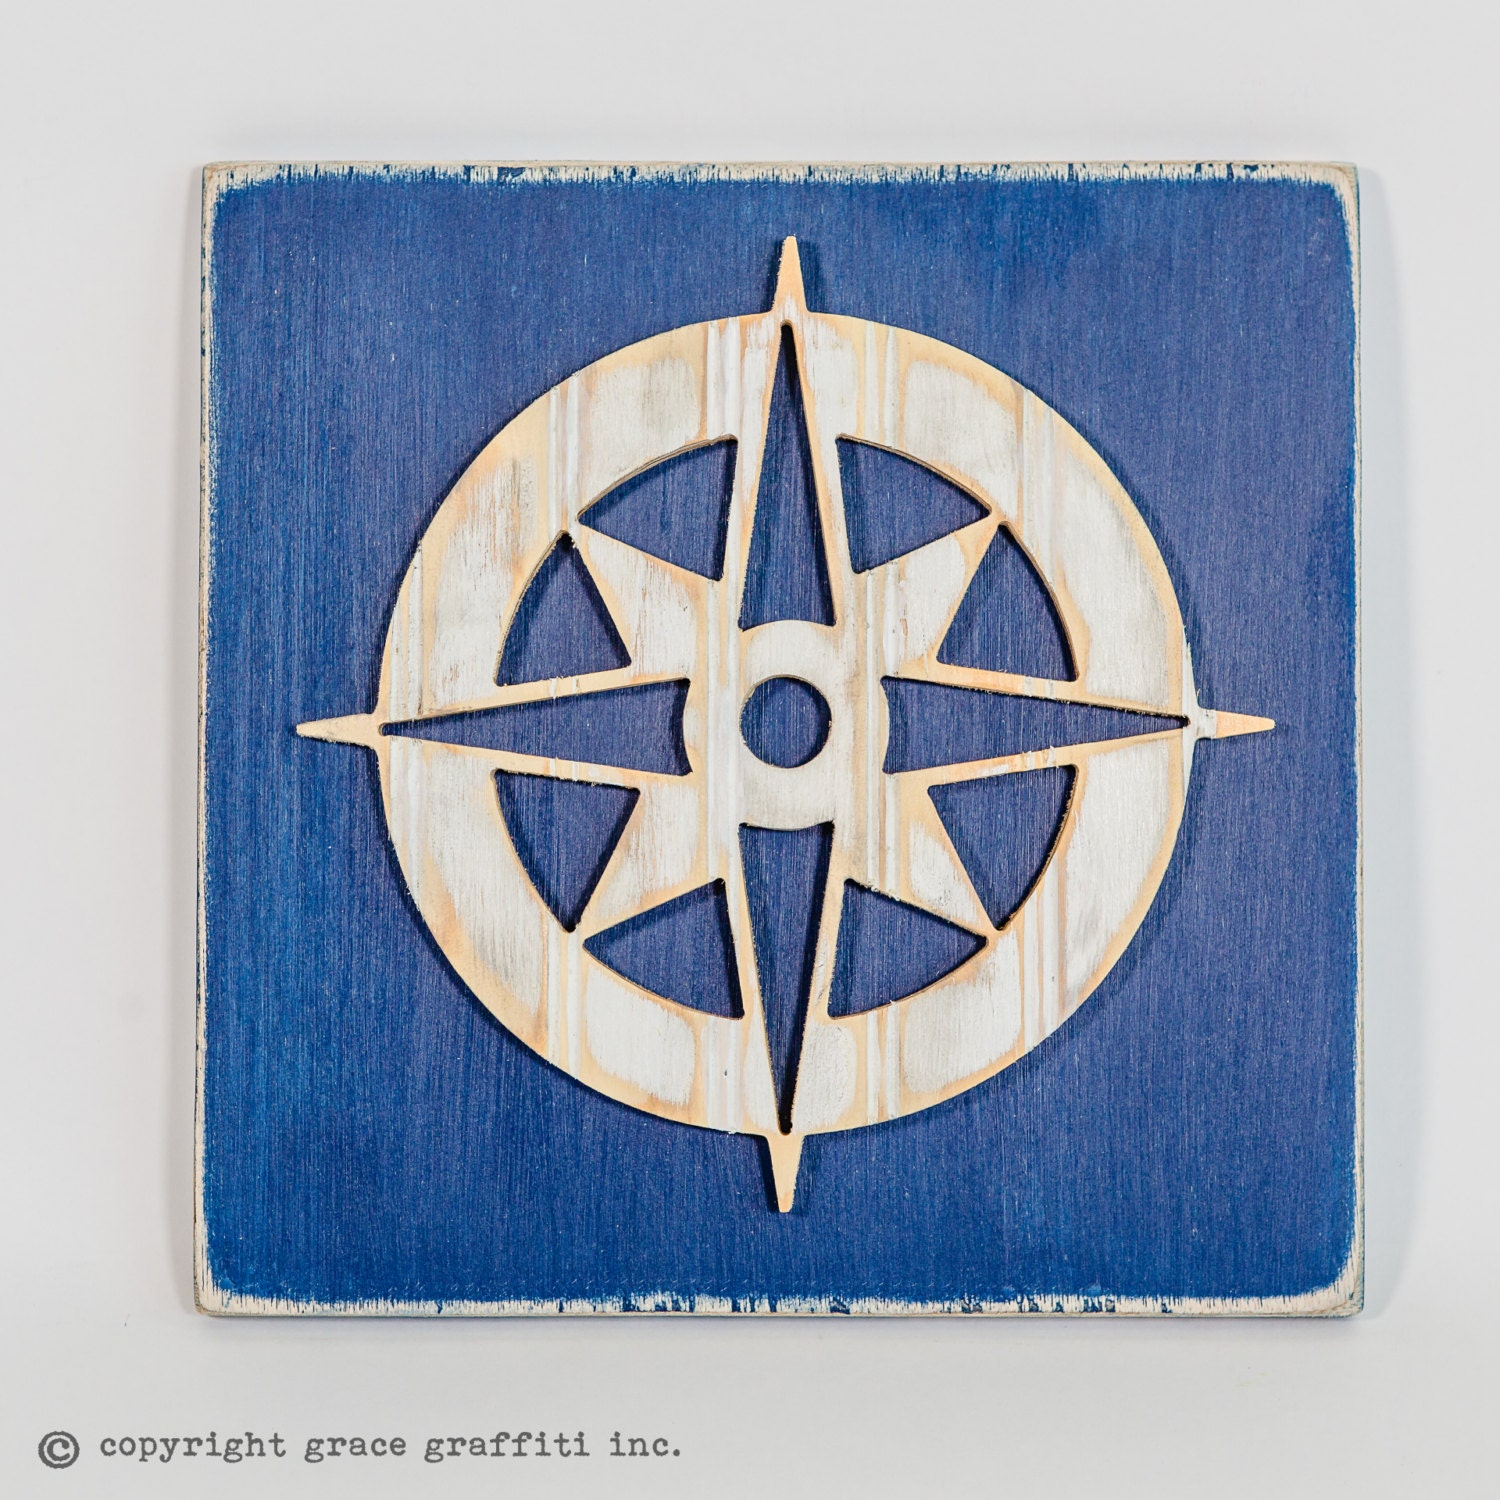 Vintage Compass Wall Decor : Compass rose wall art wooden distressed antique bead board